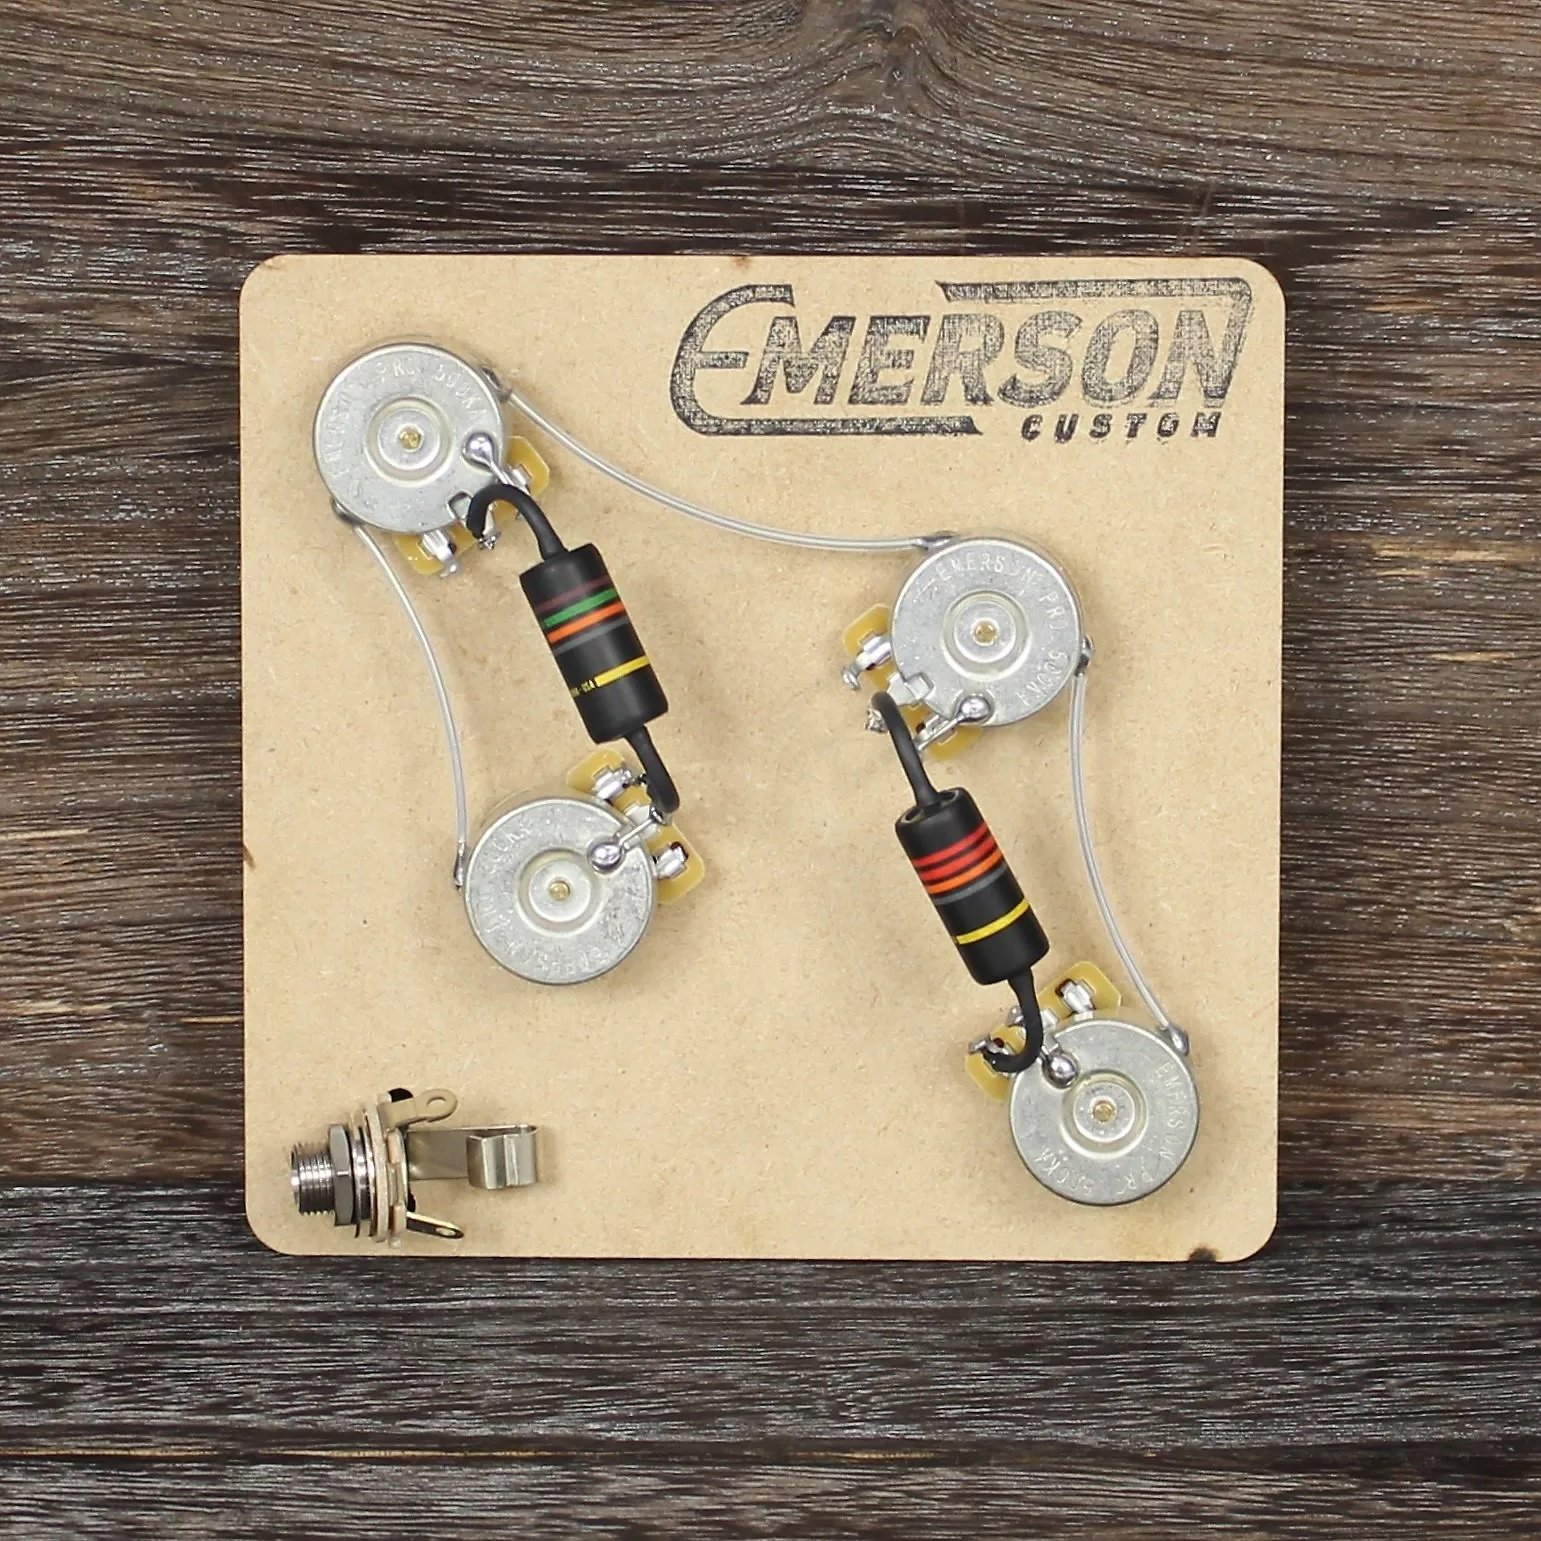 Emerson Custom 4 Knob Prewired Kit For Prs Guitars 3 Way Guitar Switch Wiring Diagram Import